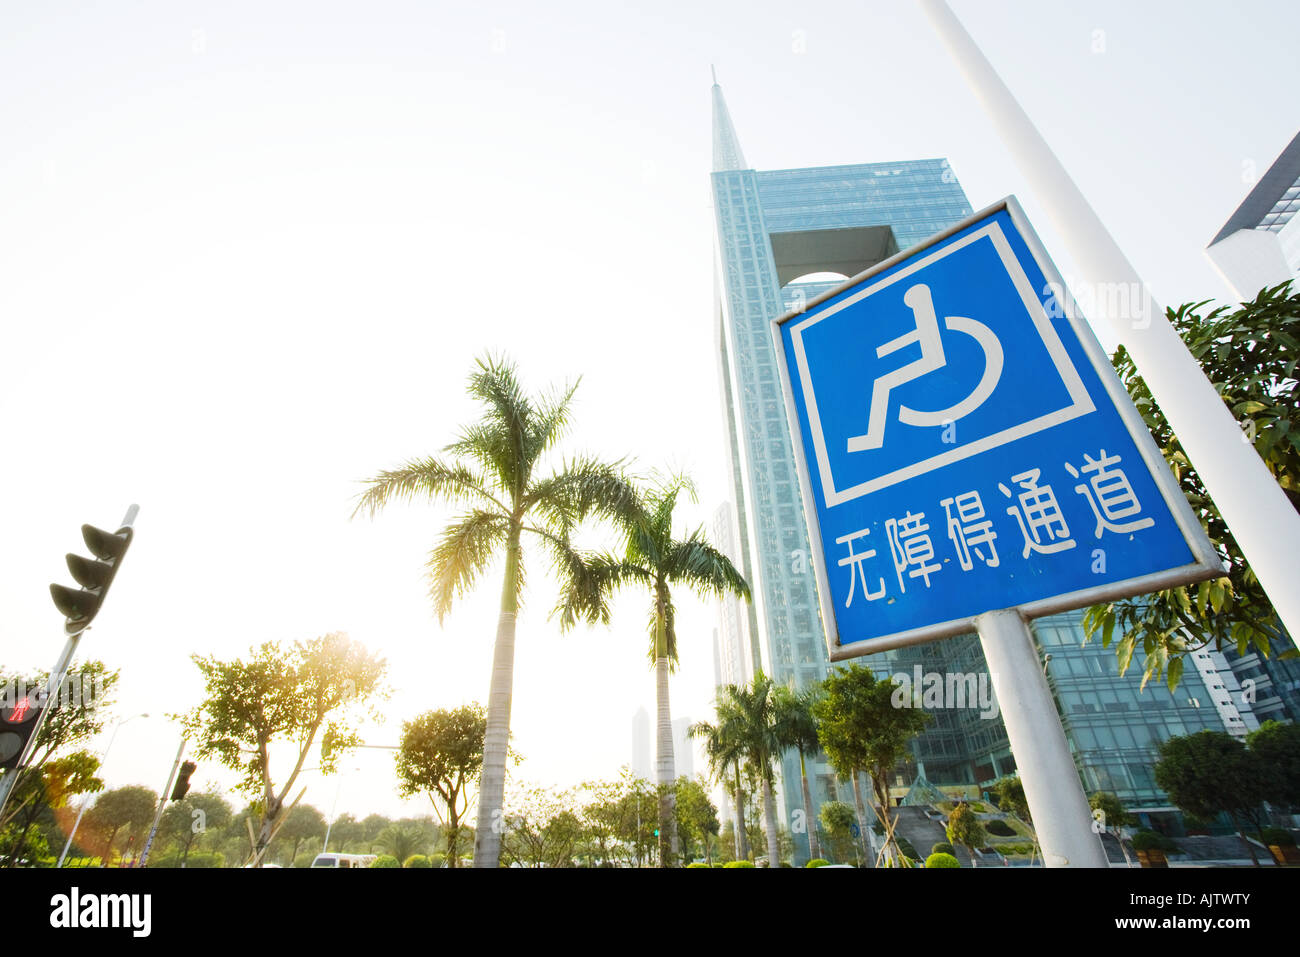 China, handicapped parking sign, low angle view - Stock Image